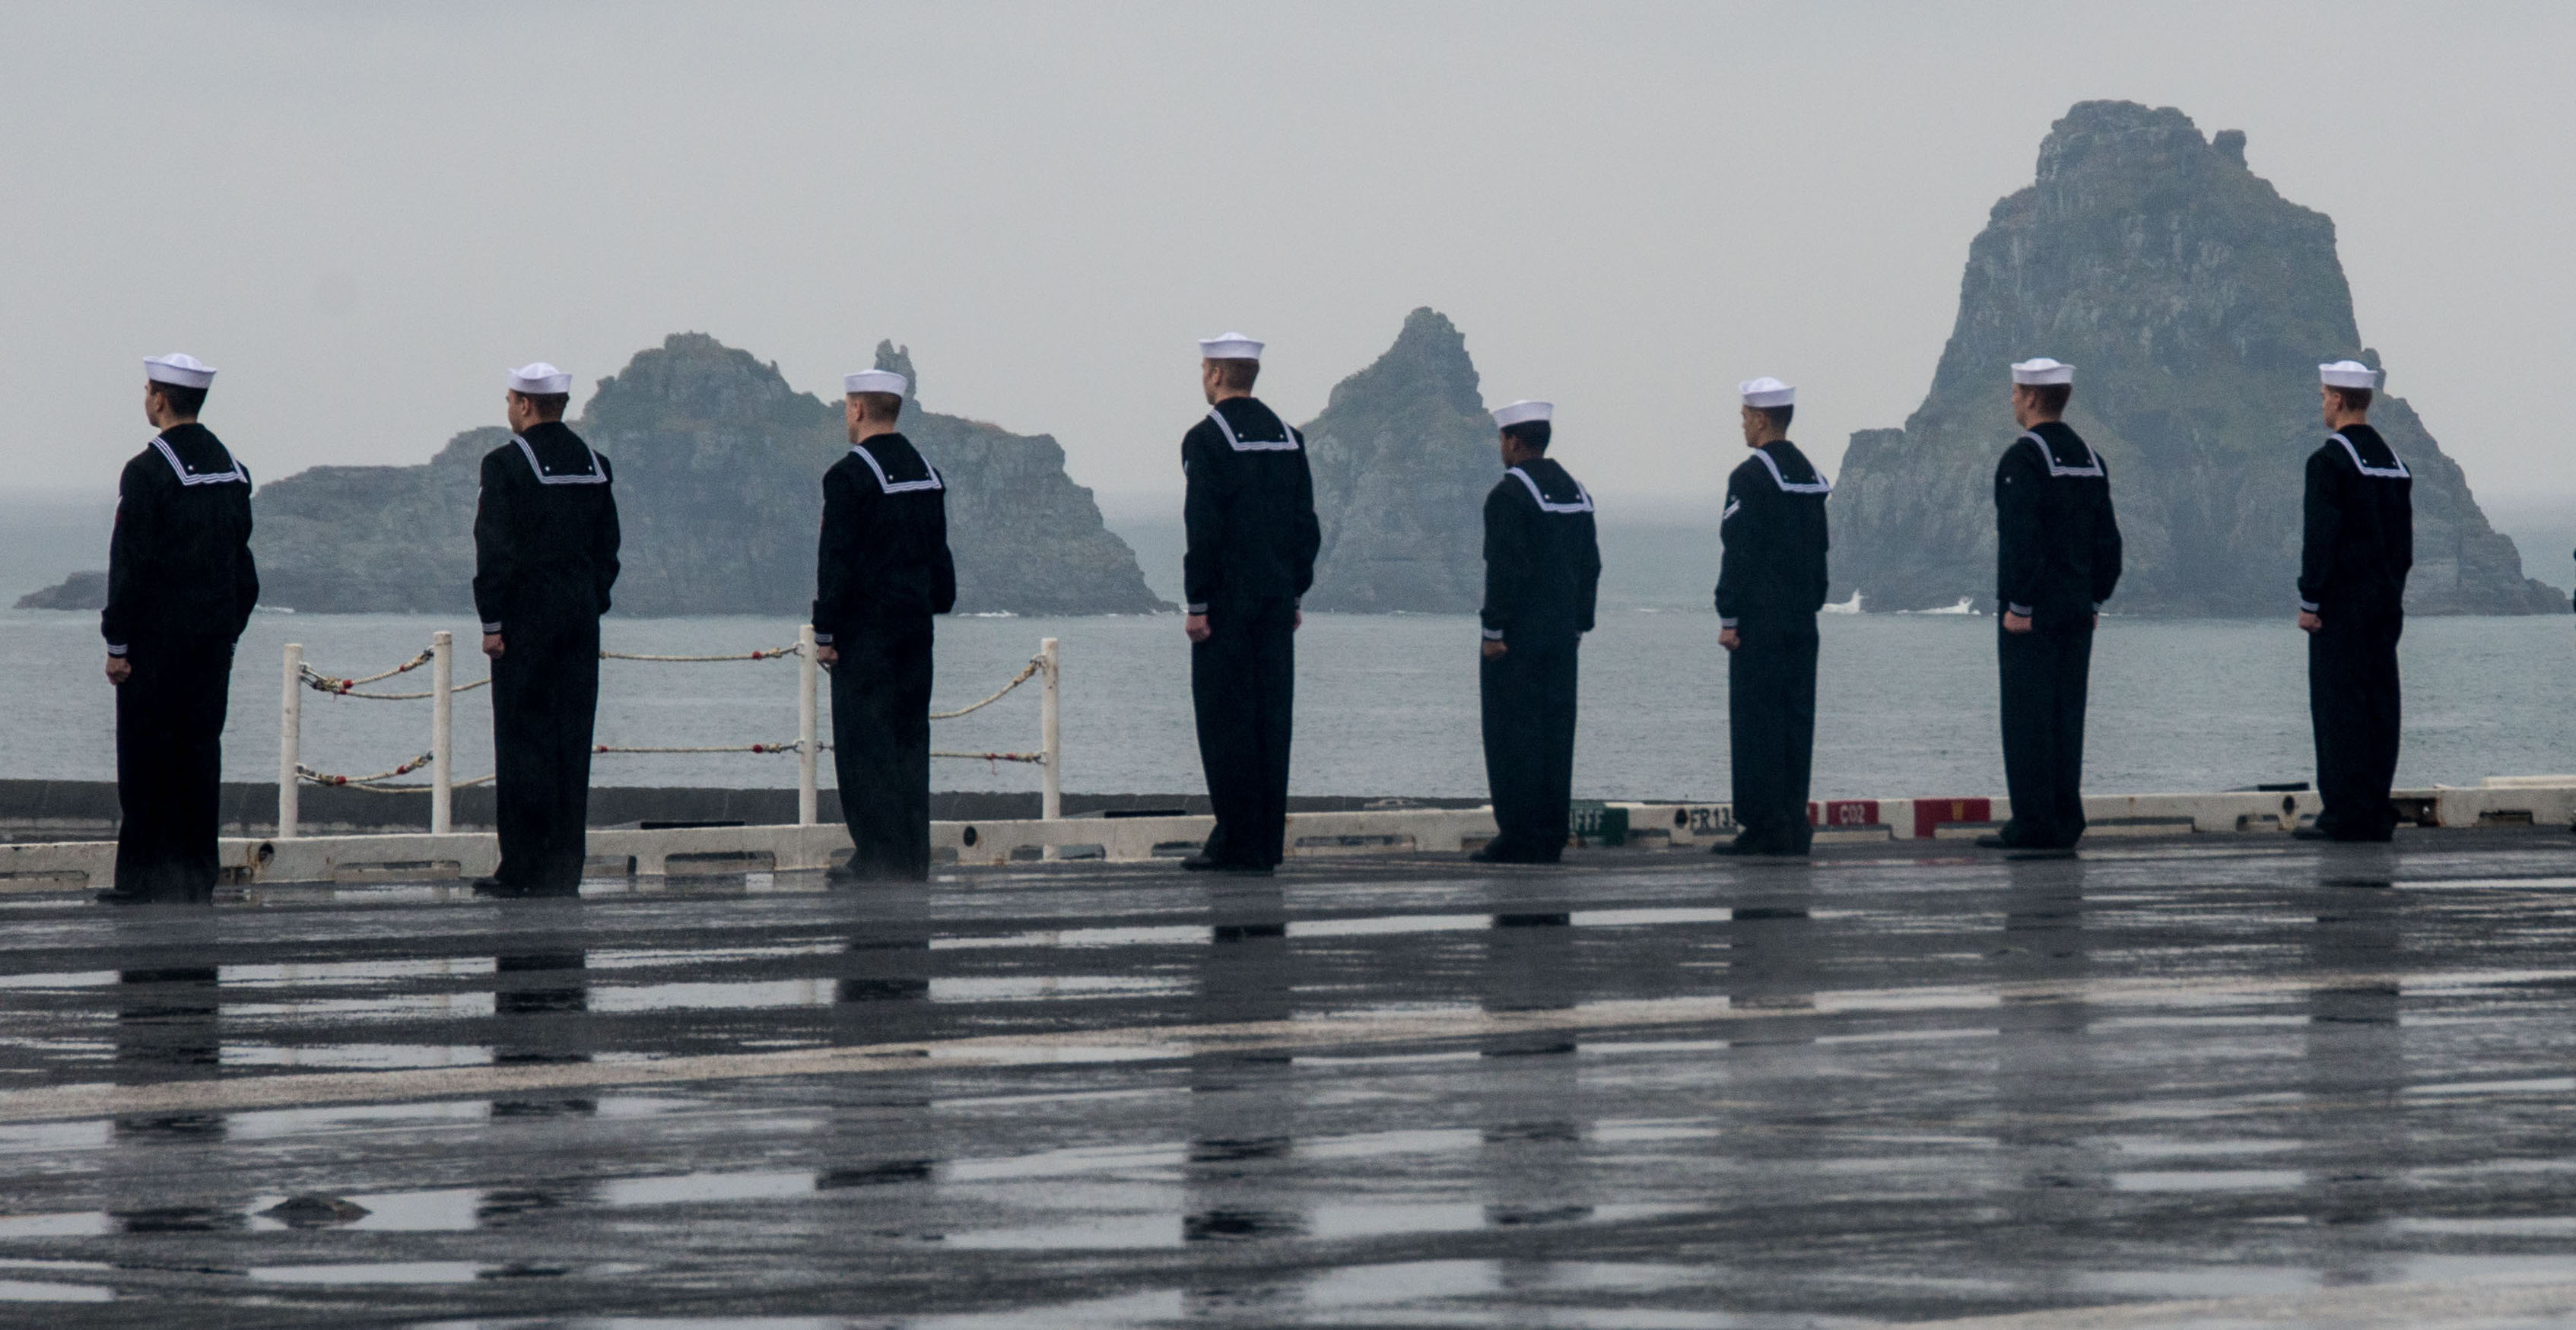 Sailors man the rails on the flight deck of USS Ronald Reagan (CVN-76), as the ship pulls into Busan, Korea on Oct, 16 2016. US Navy Photo